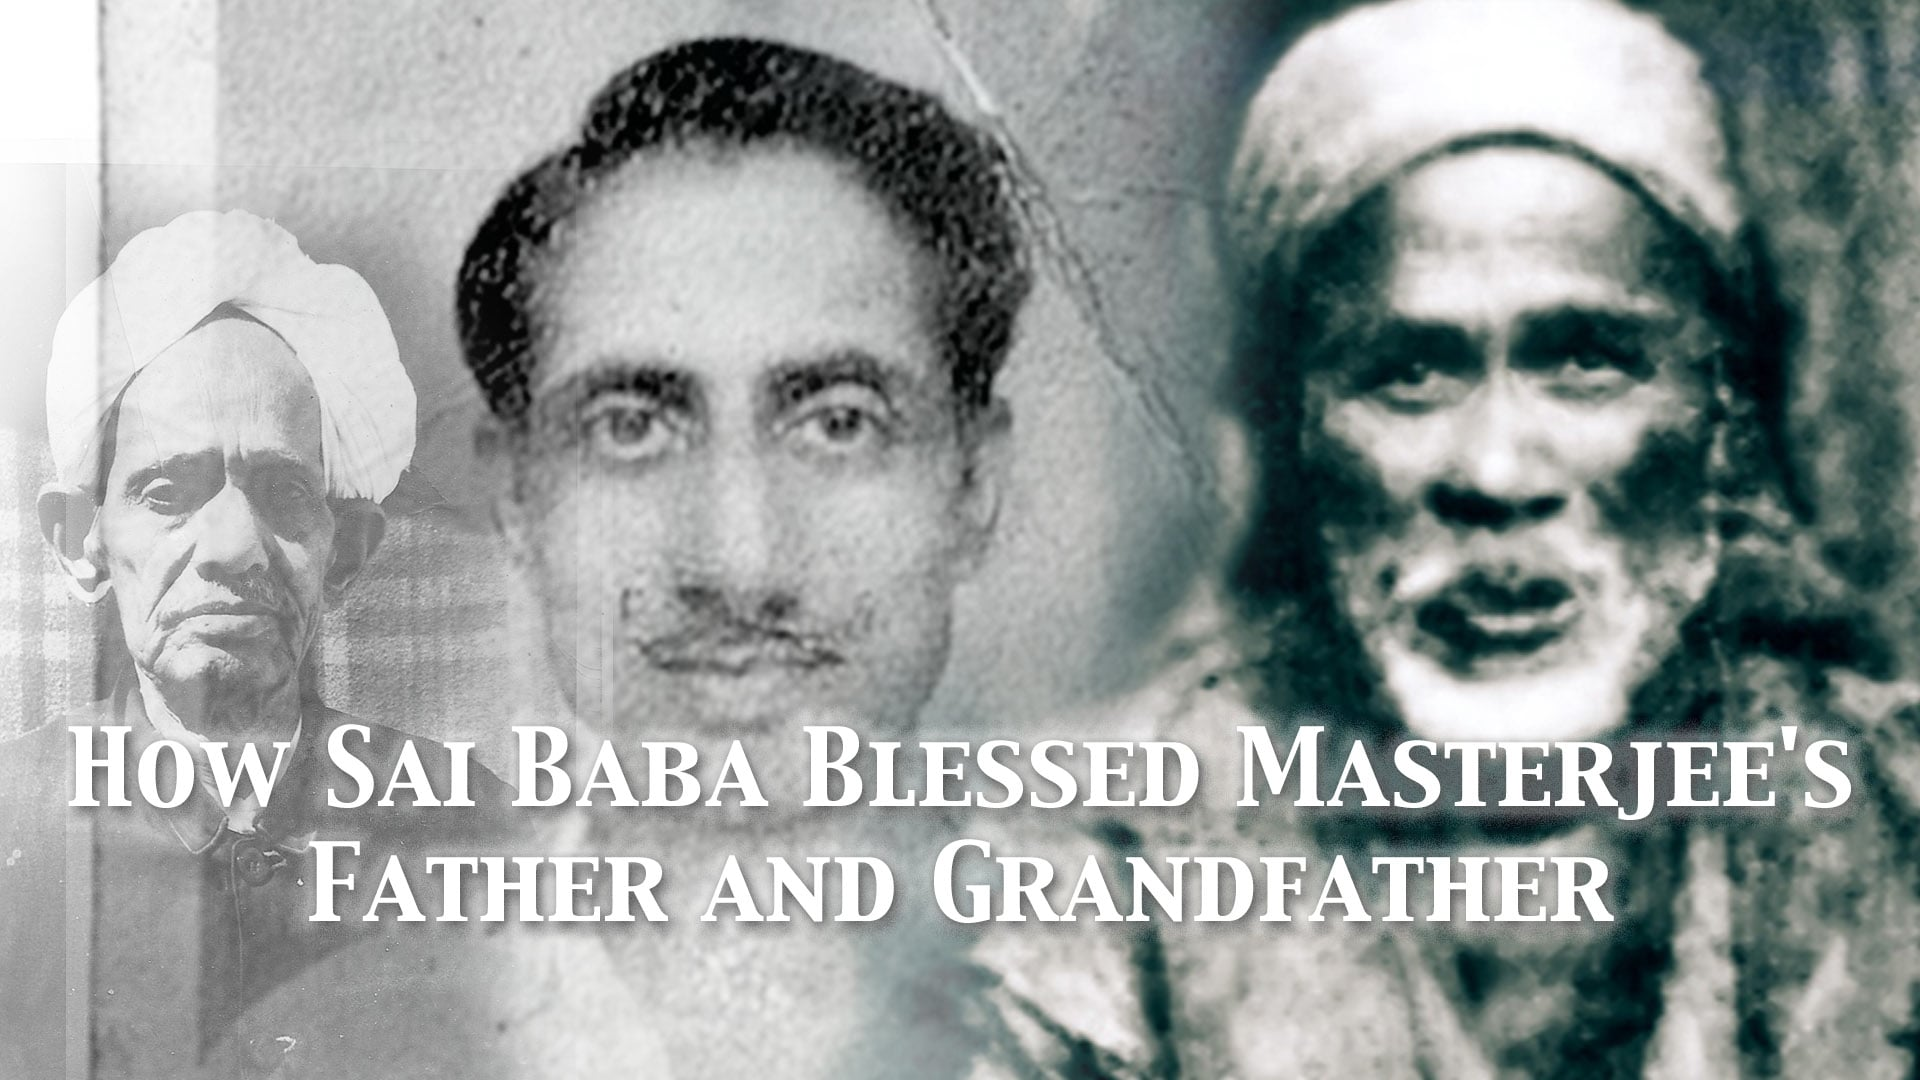 How Baba blessed Masterjee's father and grandfather